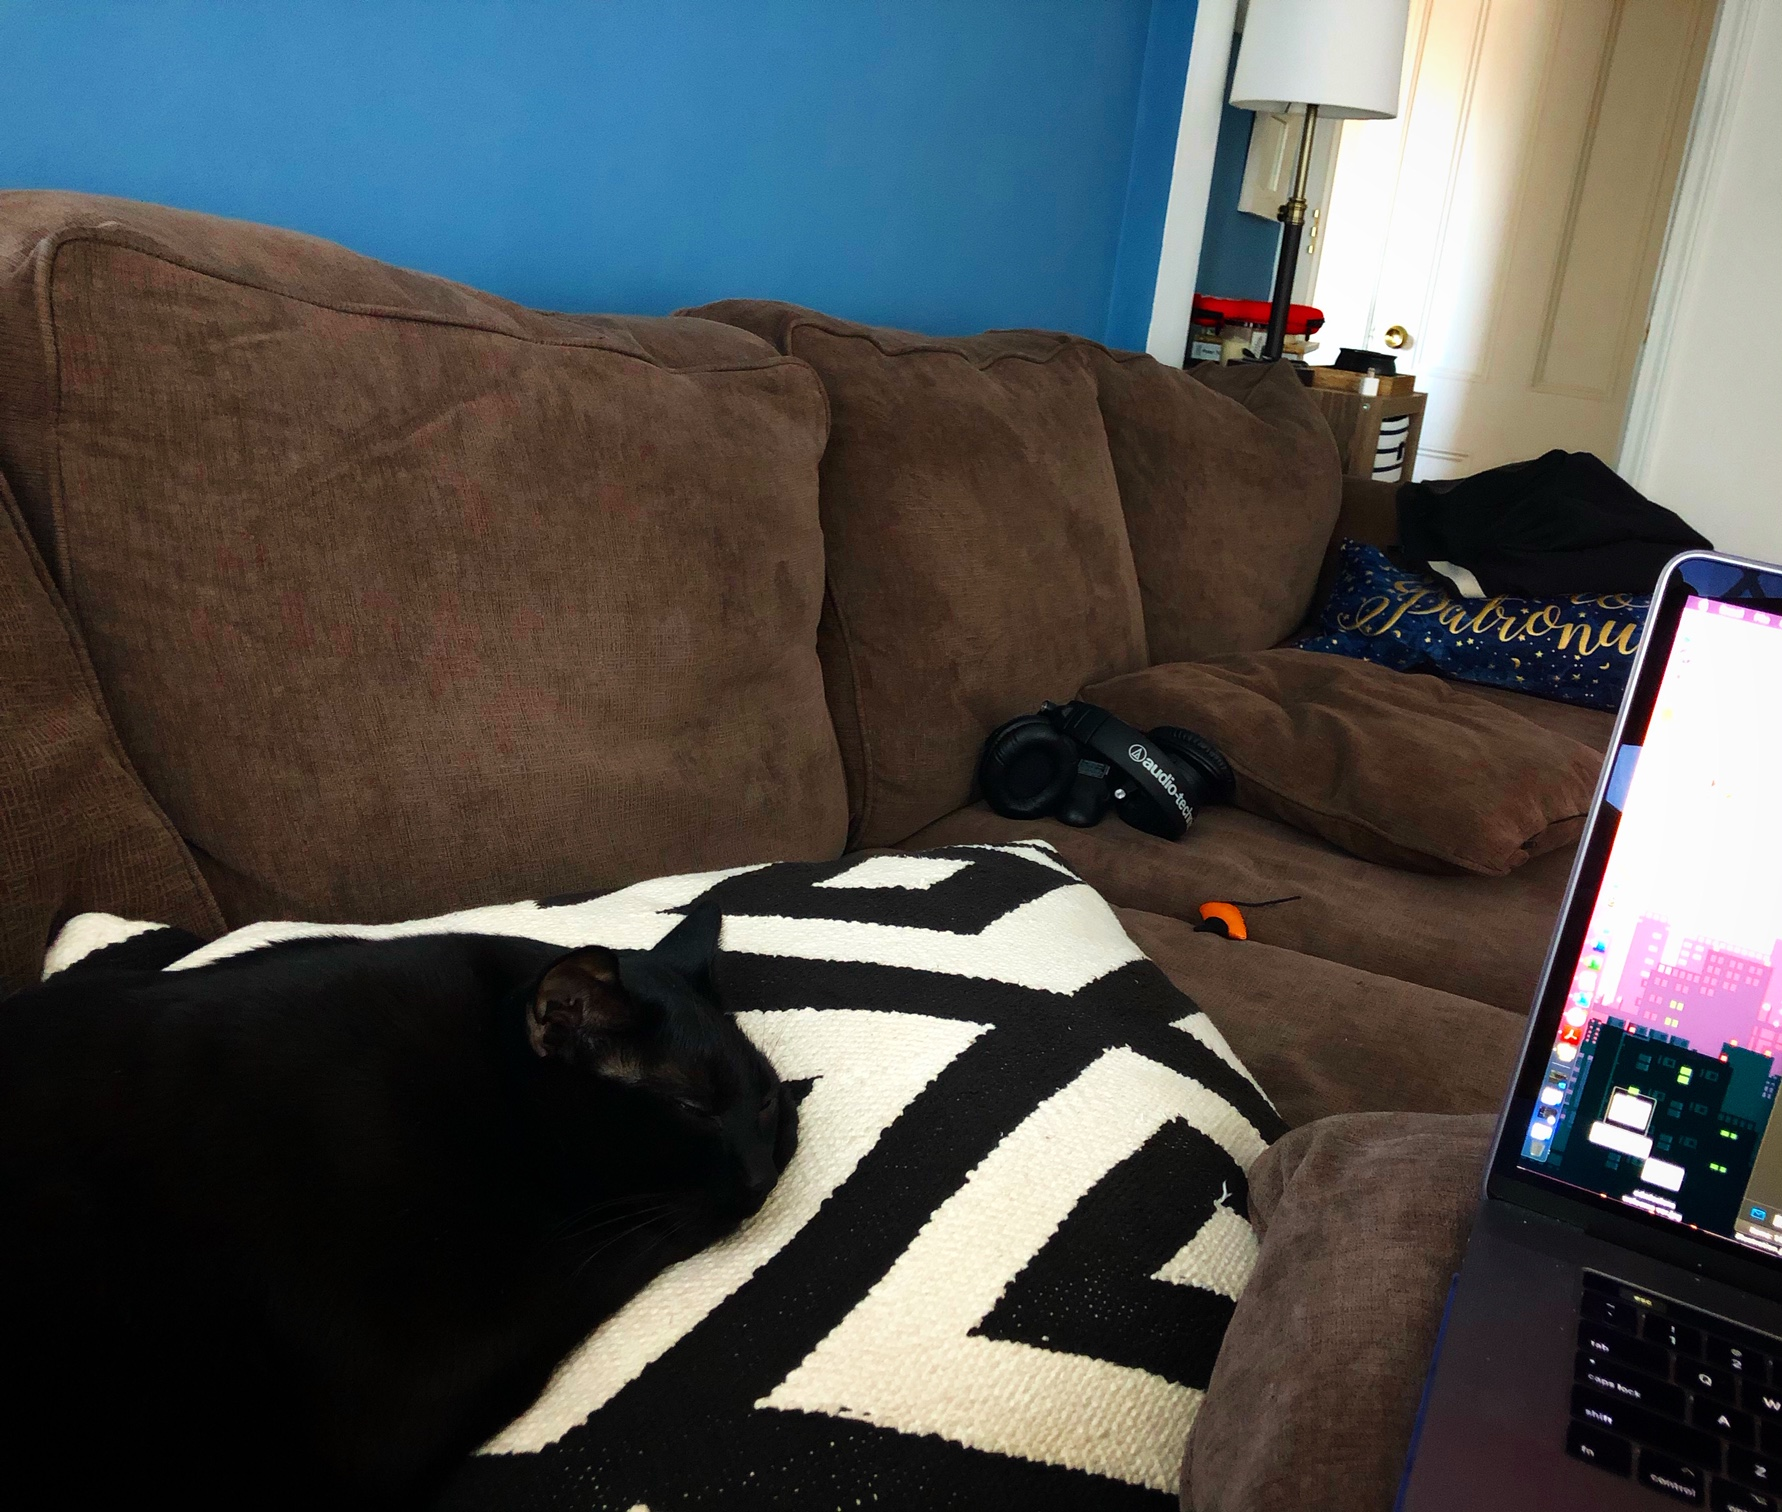 Kellen's couch and laptop, featuring his cat